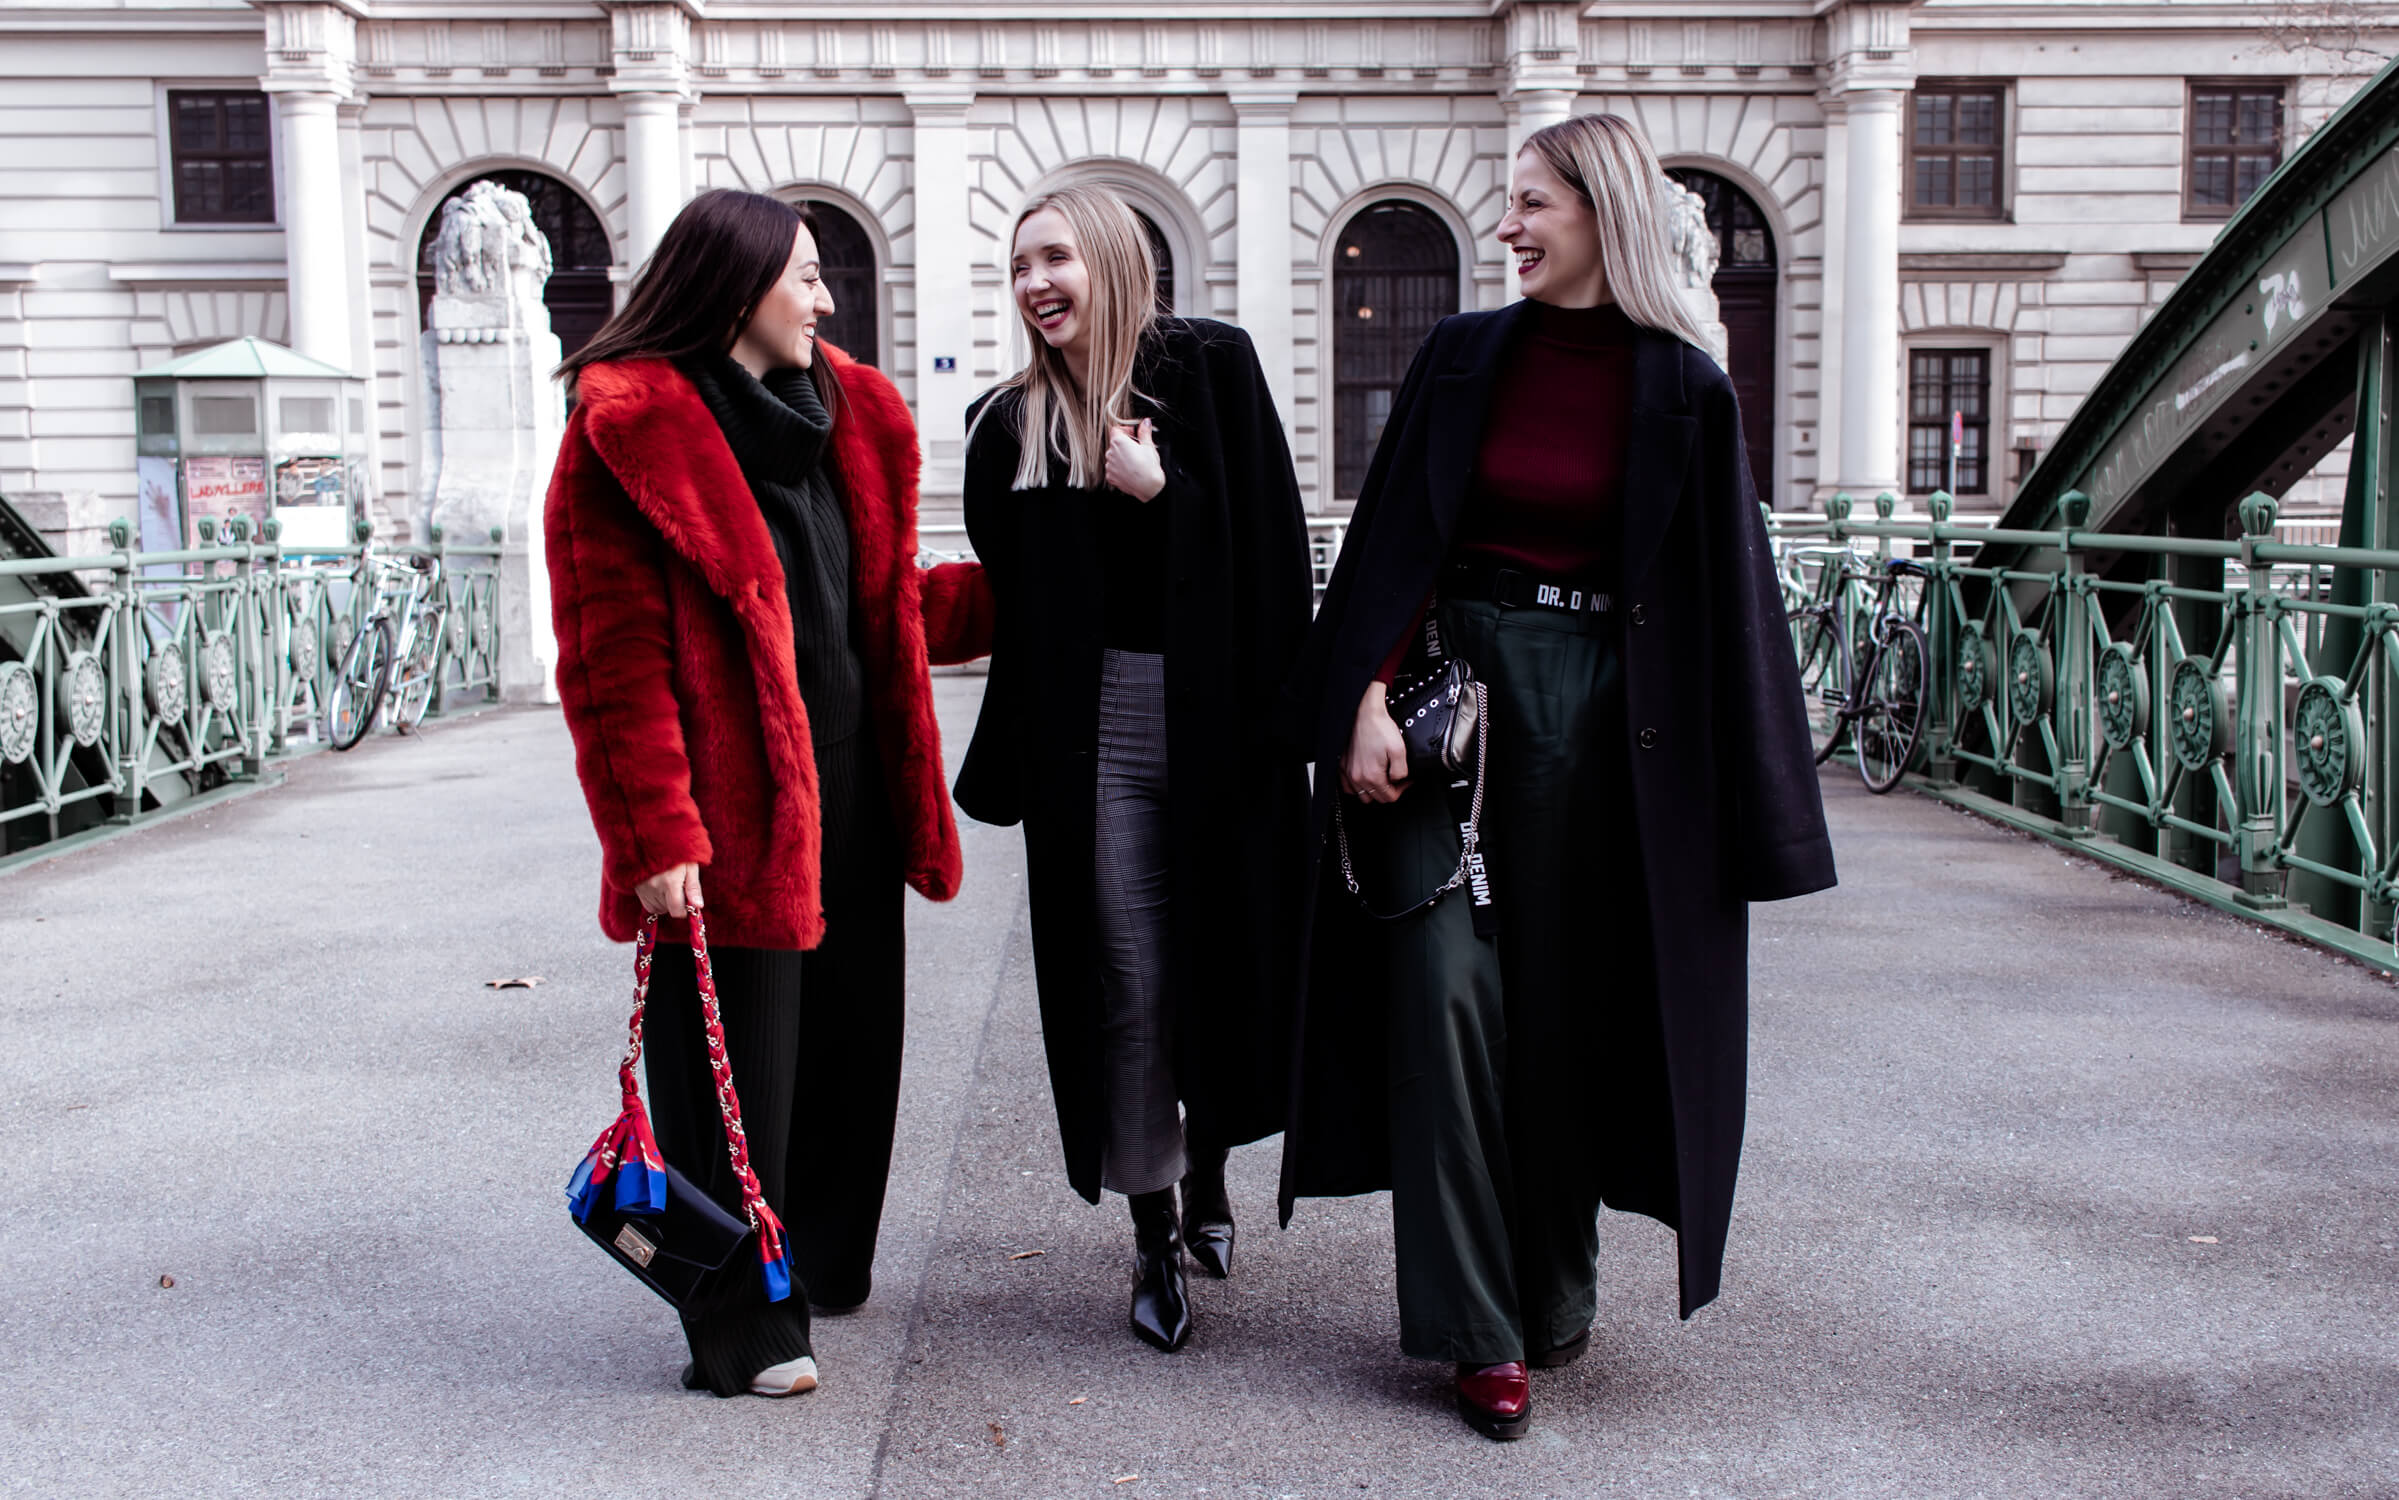 The Cosmopolitas Bloggers from Vienna